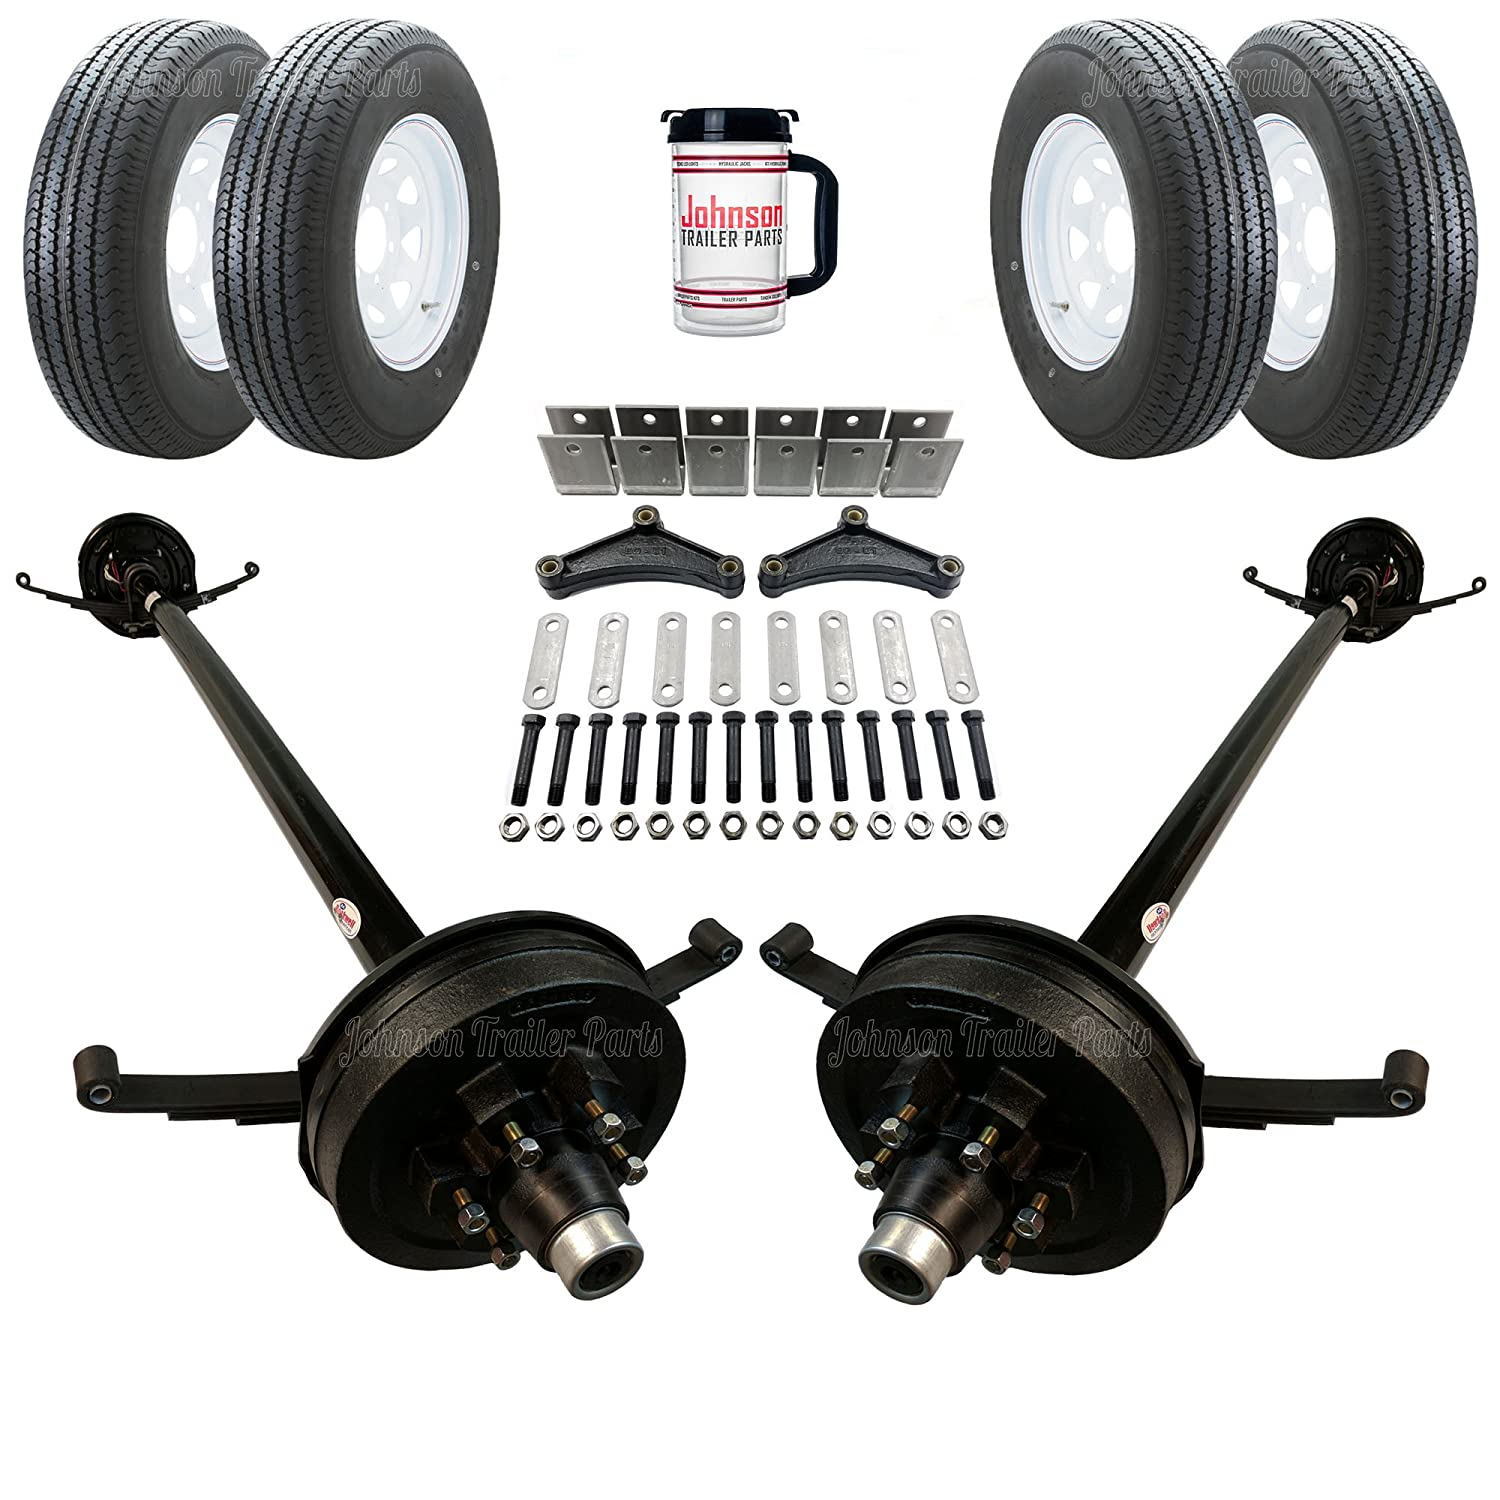 Rockwell American Tandem 5, 200 lb Electric Brake Trailer Axle Kit - Includes Trailer Tires & Wheels (85' Hubface - 70' Spring Center) 200 lb Electric Brake Trailer Axle Kit - Includes Trailer Tires & Wheels (85 Hubface - 70 Spring Center)